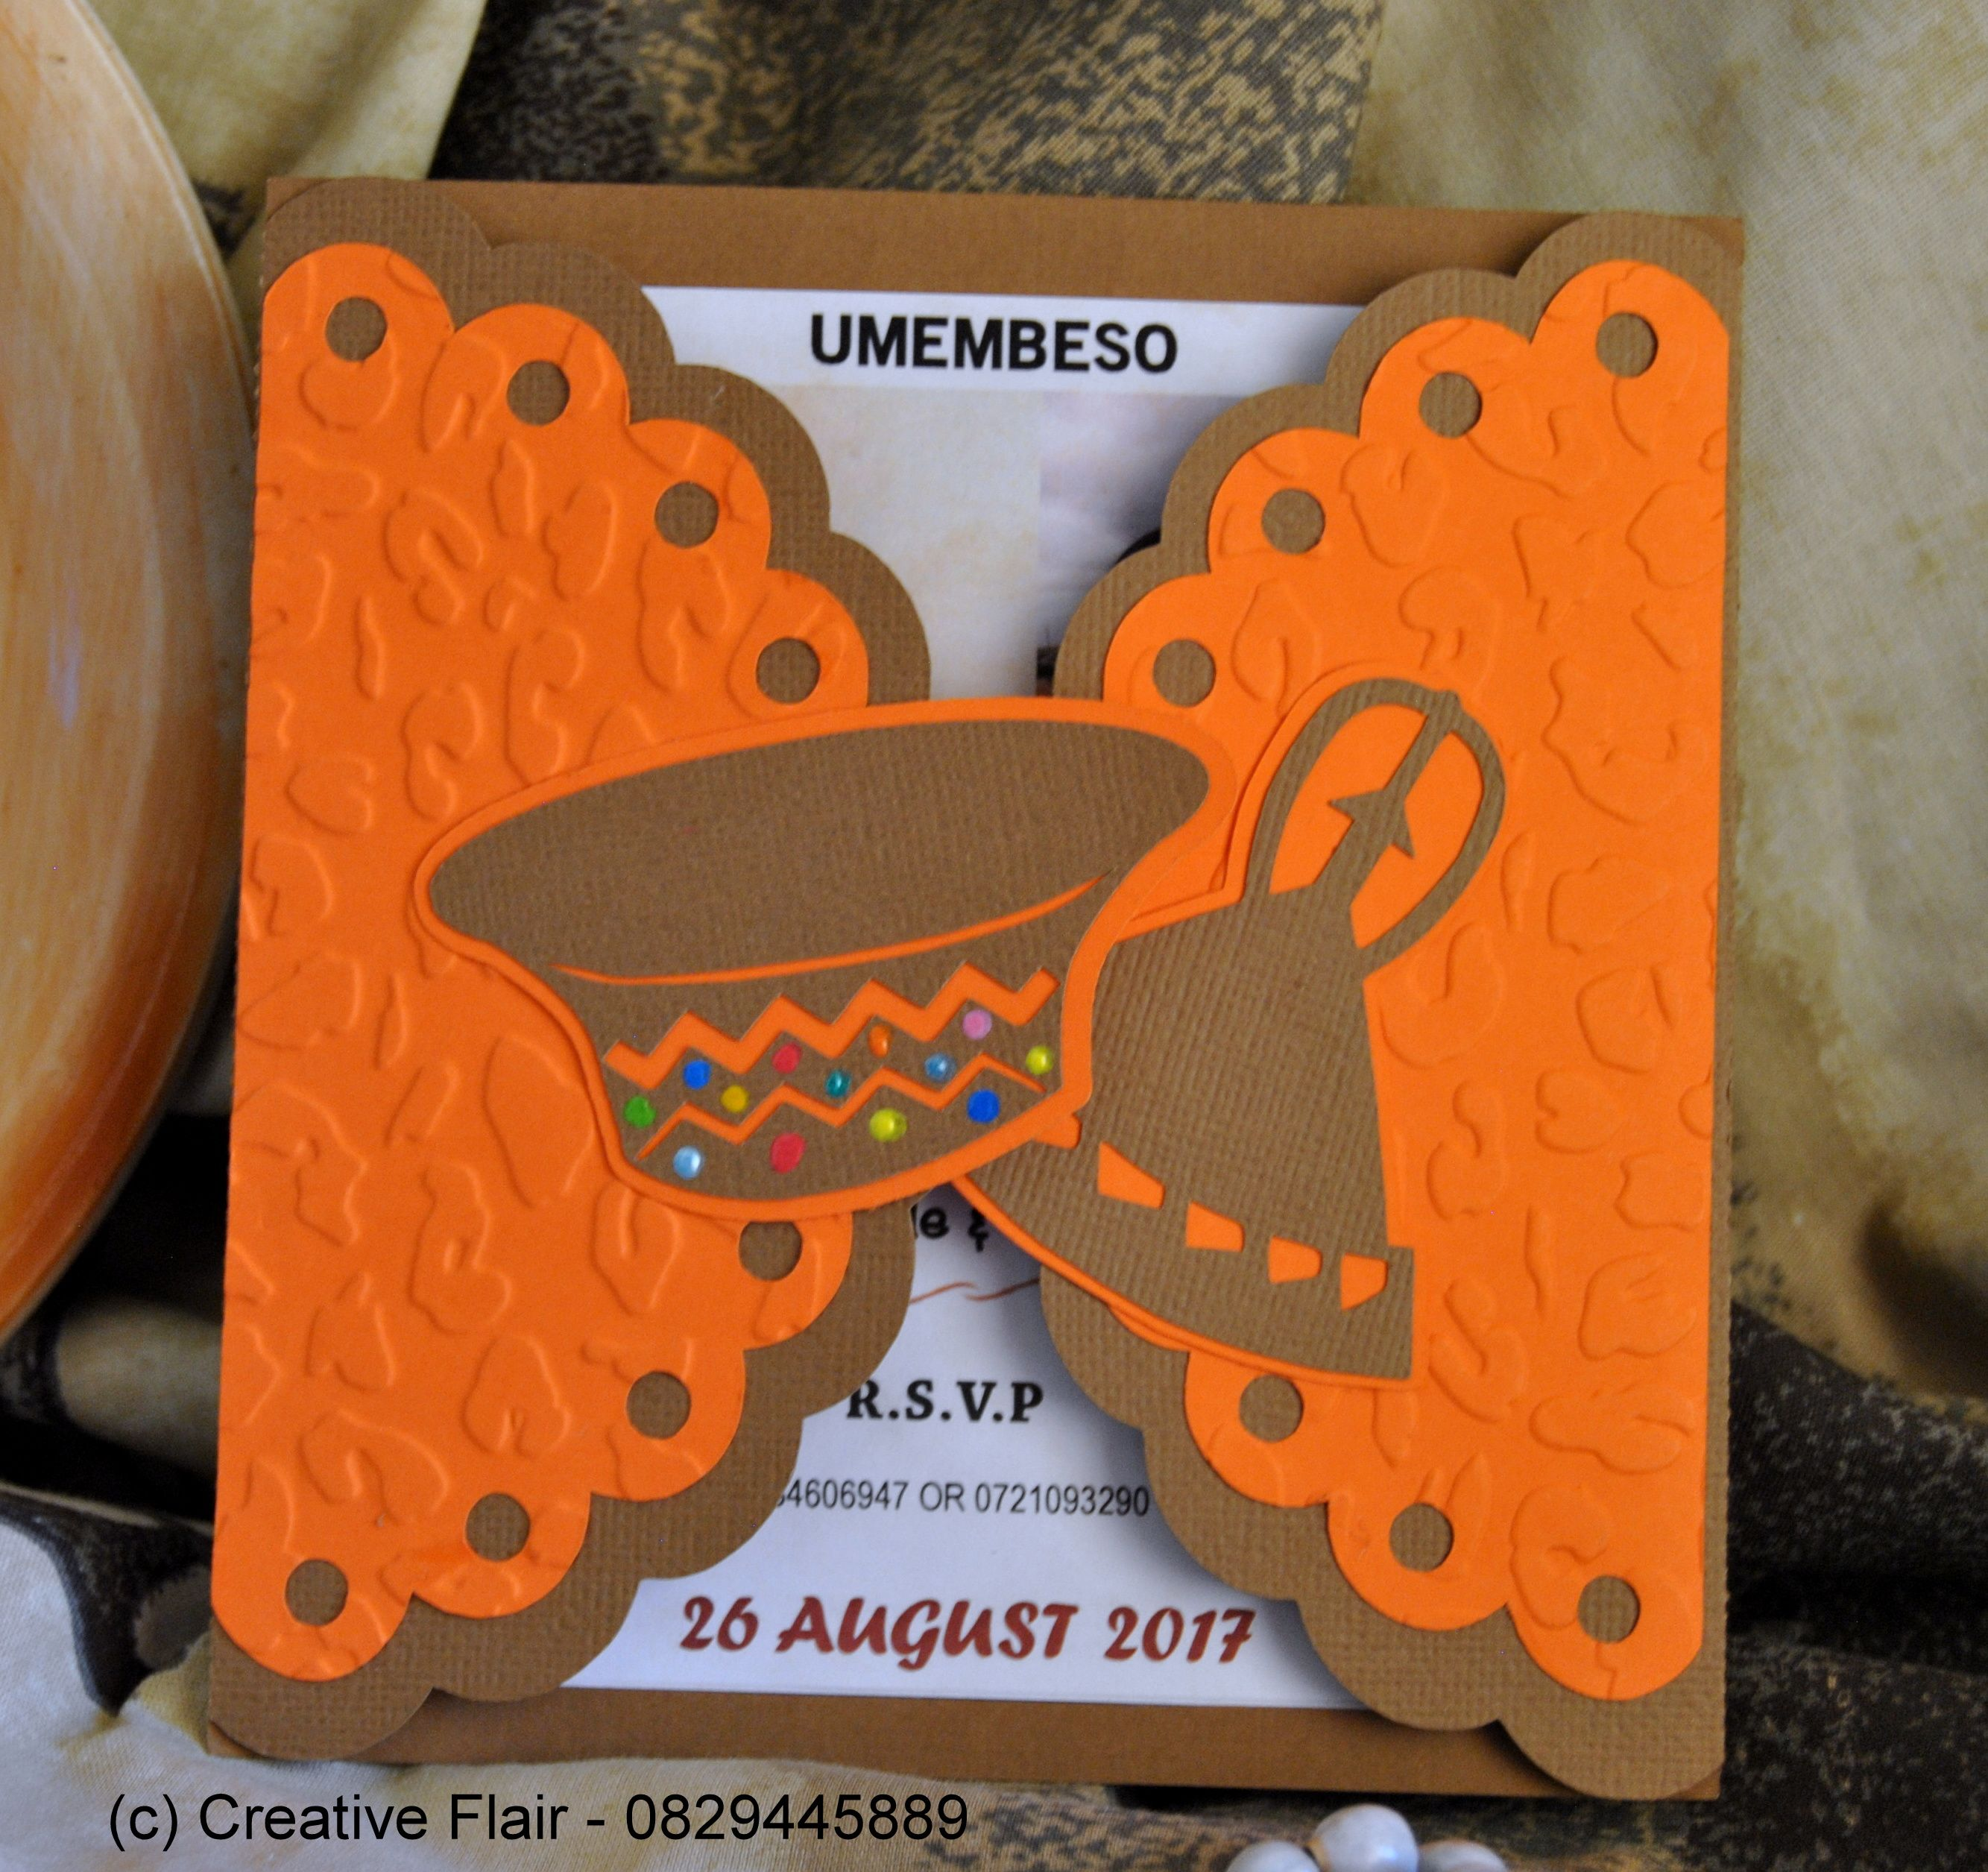 Igbo Traditional Wedding Invitation Cards: Traditional Zulu And Lesotho Umembeso Wedding Invitation